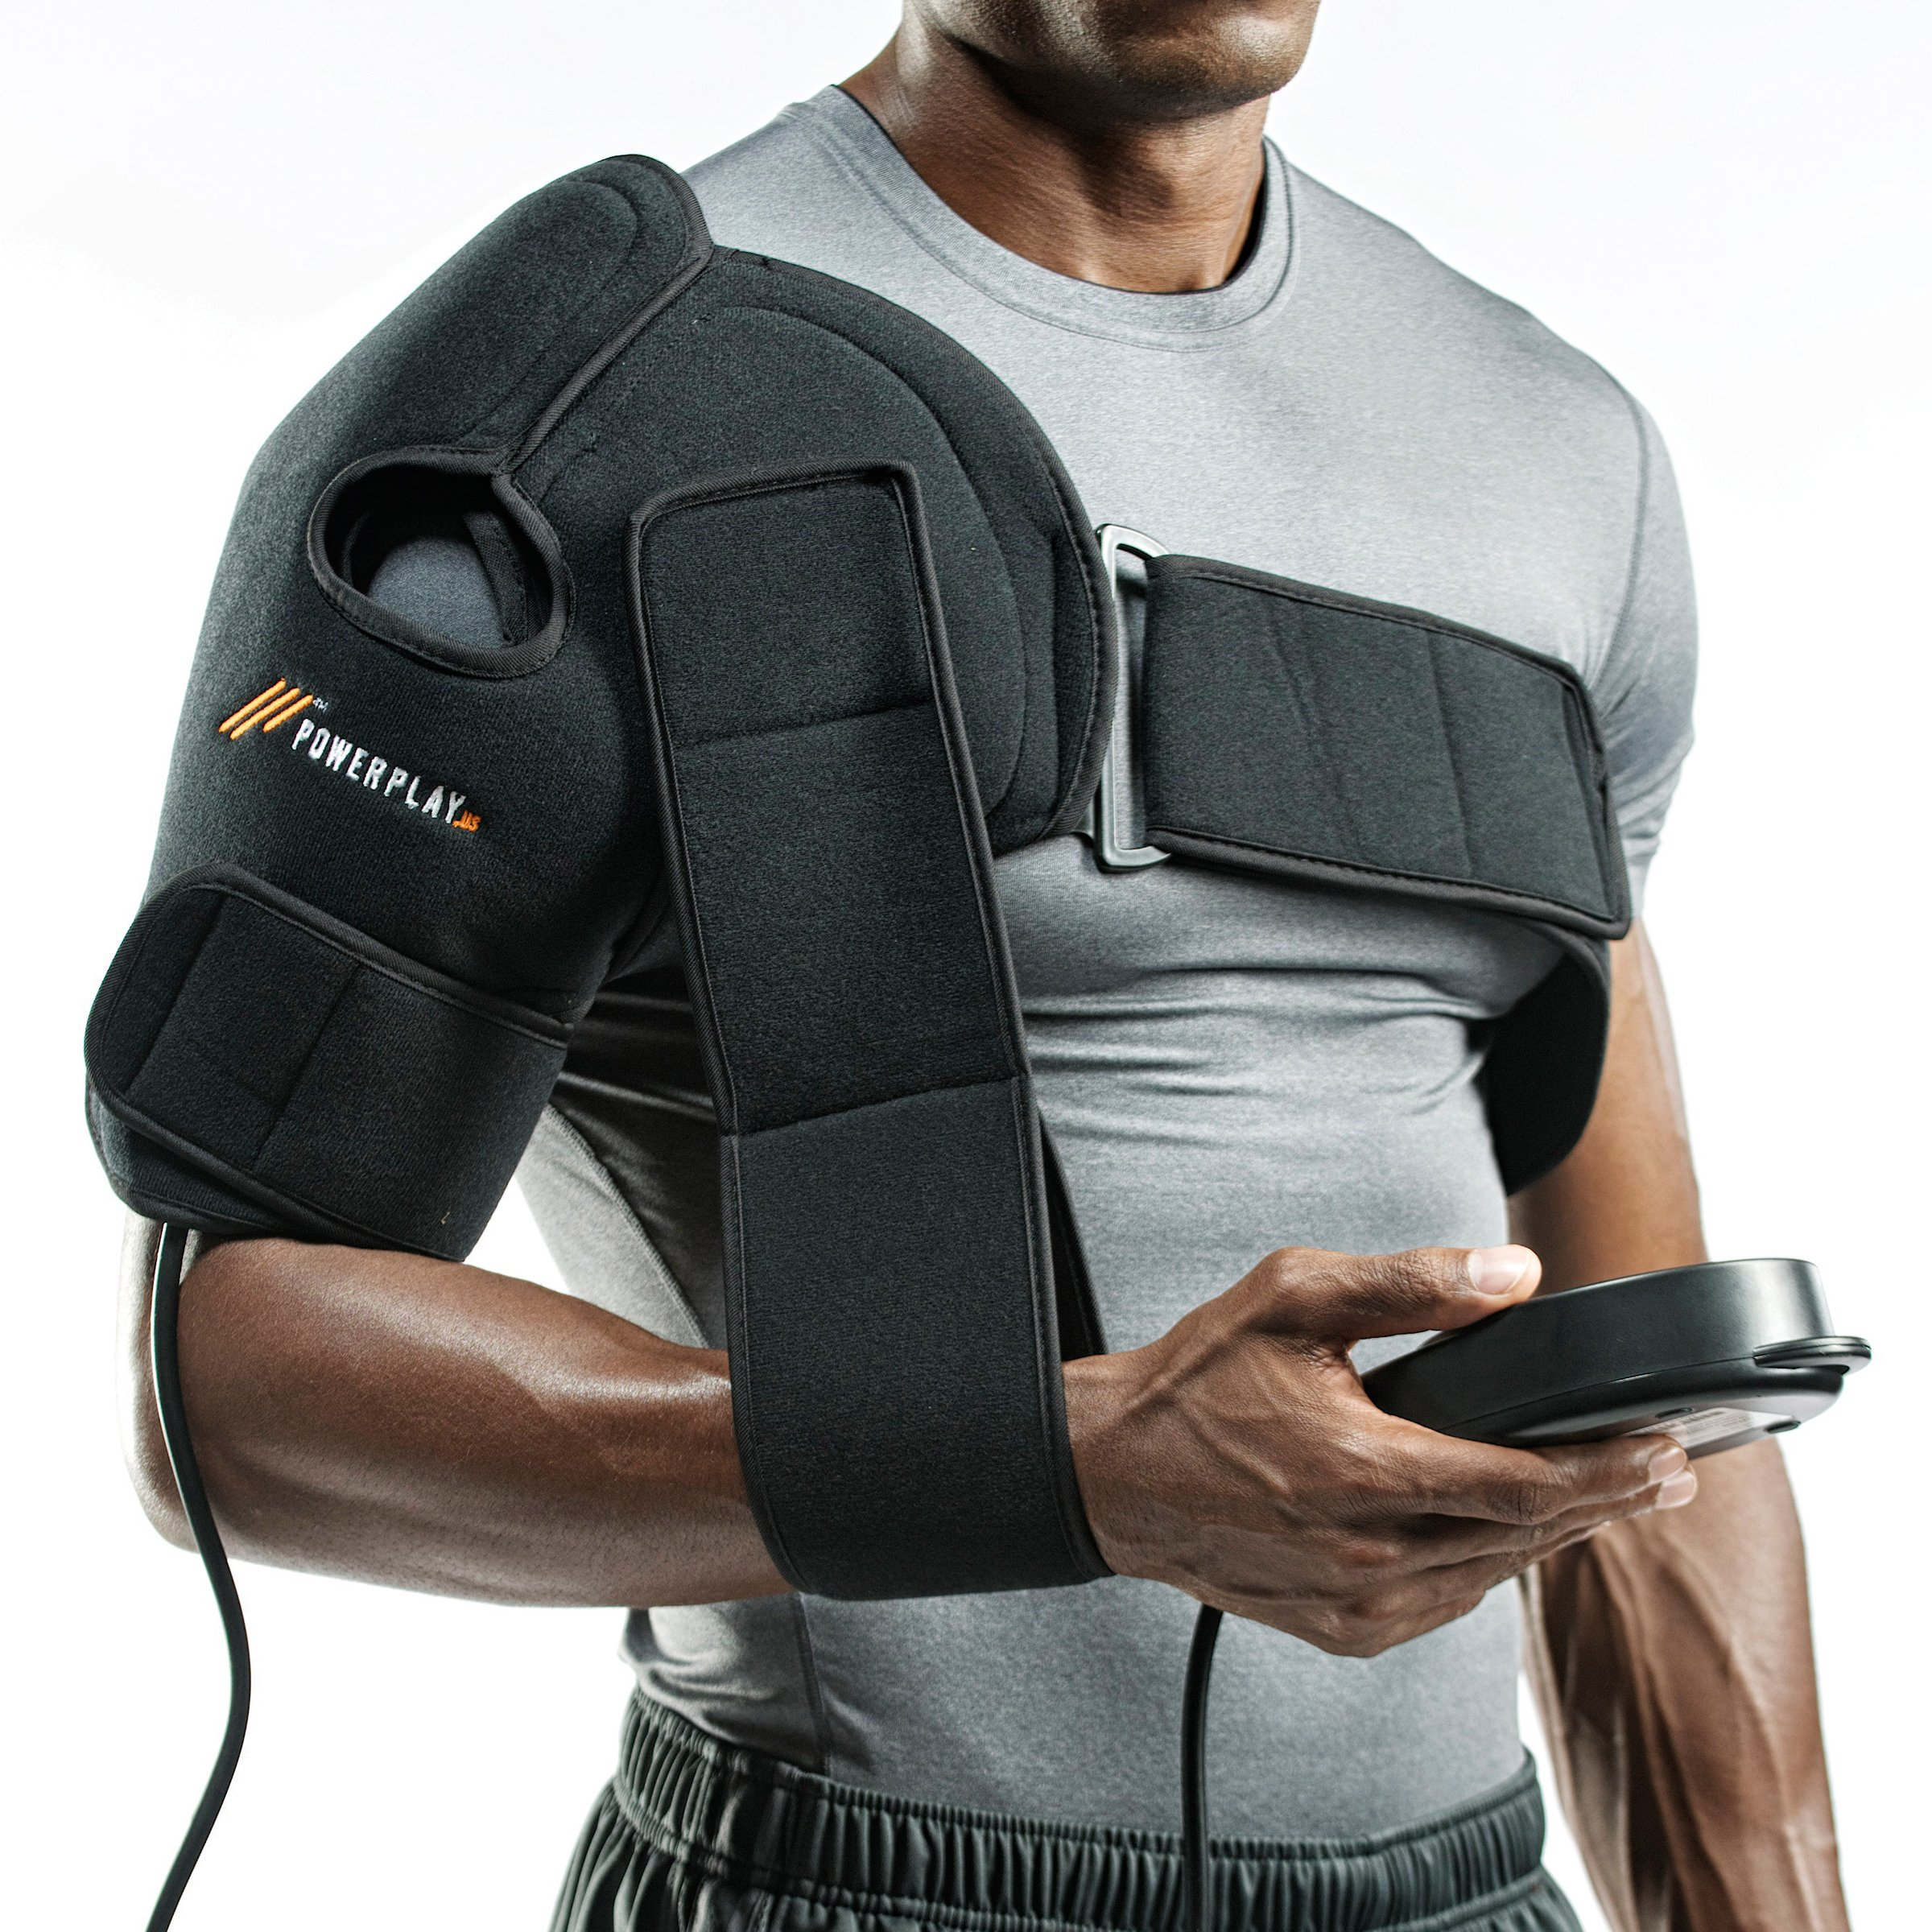 PowerPlay Cold & Compression Cold Therapy Shoulder Orthosis by PowerPlay Cold & Compression